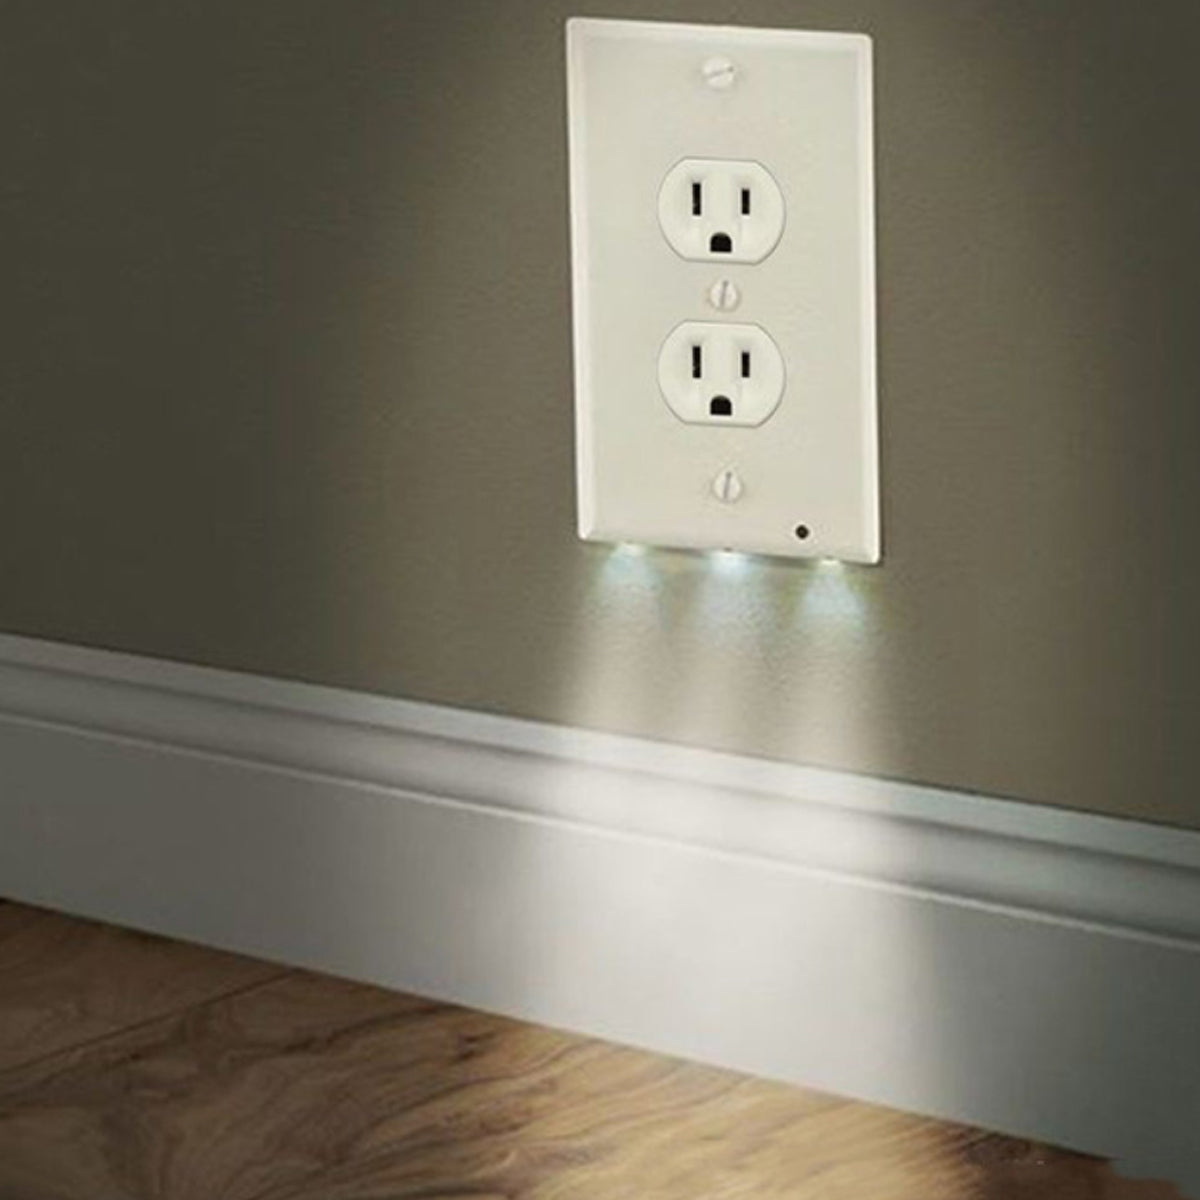 shopify-Path Lighter Auto Motion Wall Plate LED Light  2- PACK-3